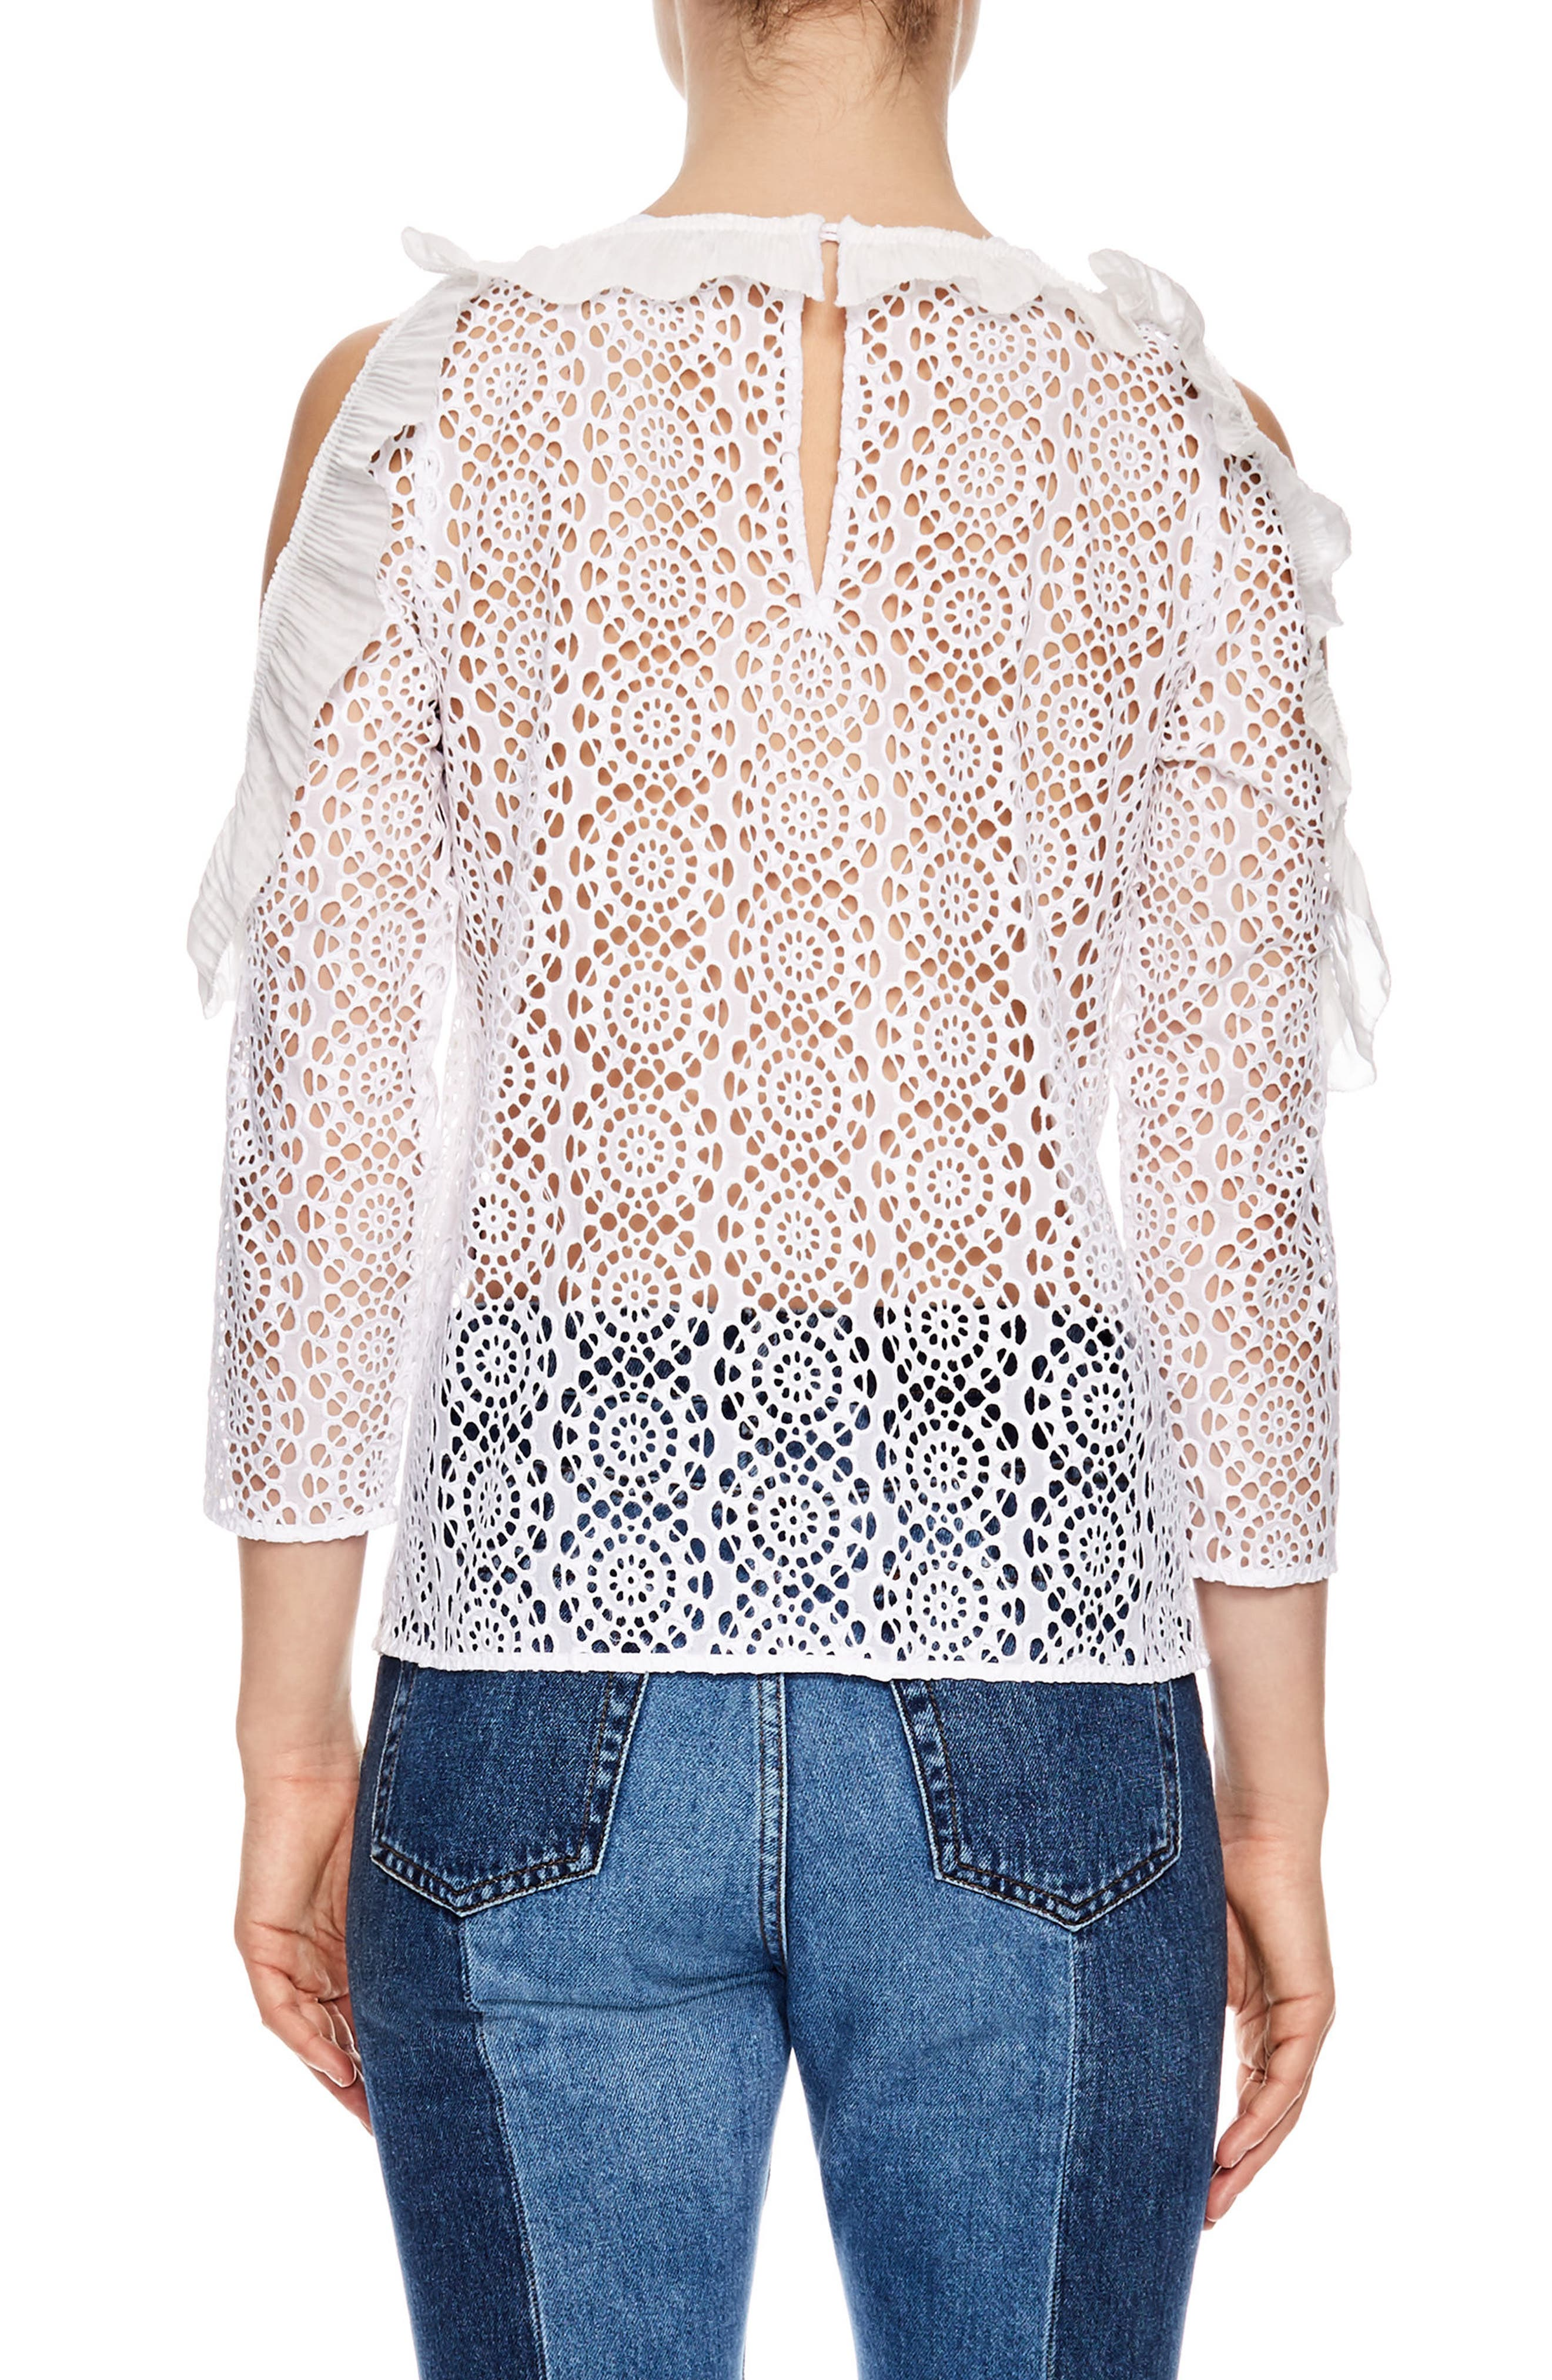 SANDRO,                             Sheer Lace Cold Shoulder Top,                             Alternate thumbnail 2, color,                             100